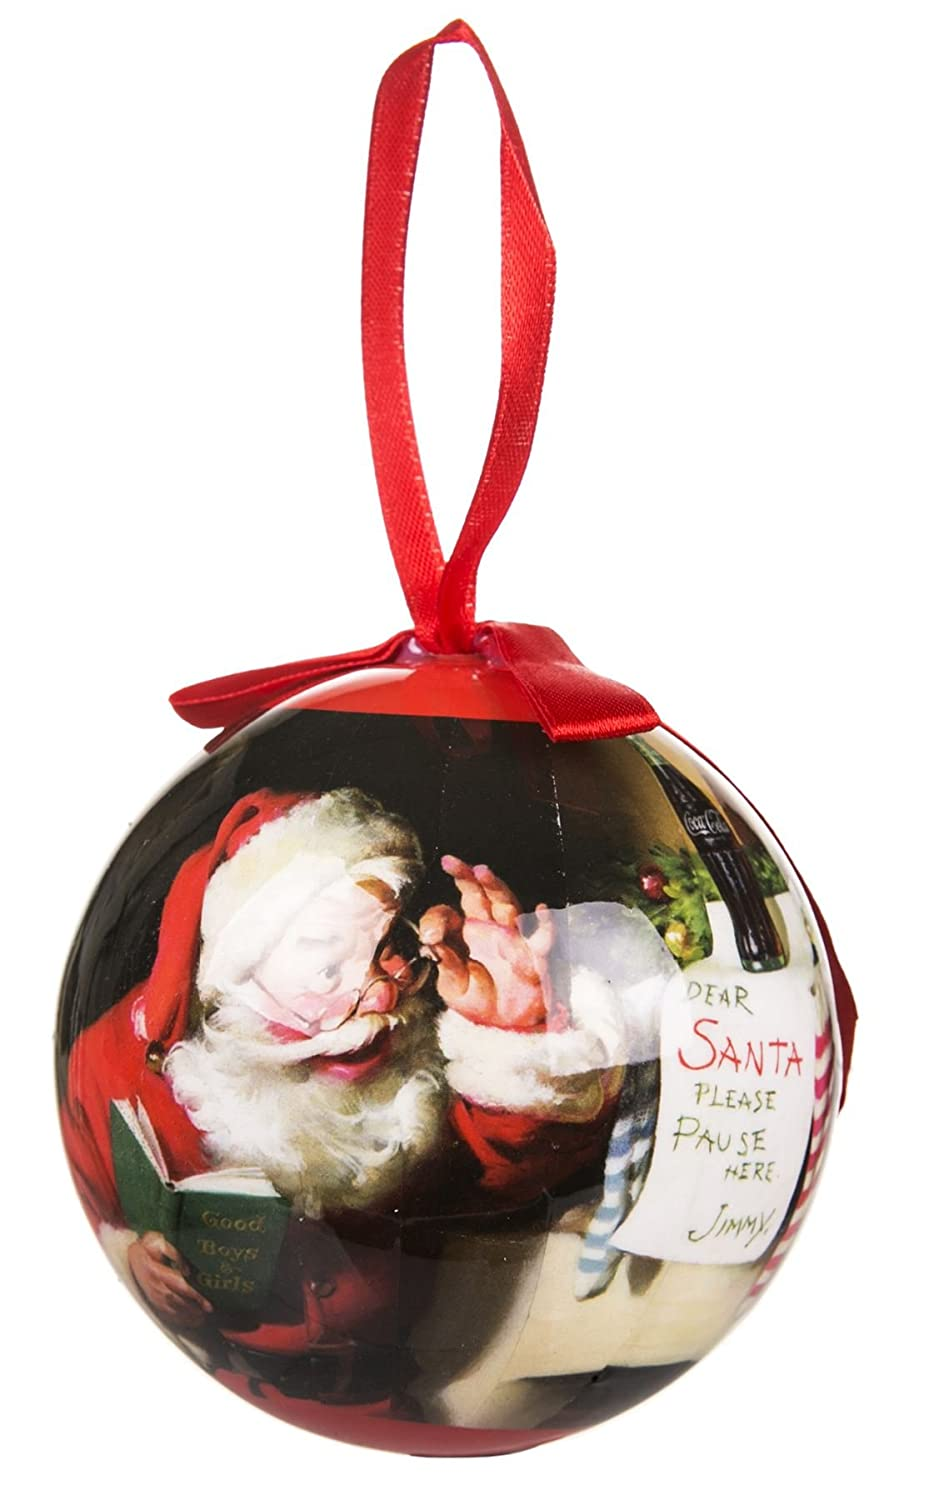 Coca Cola Hand Crafted Christmas Tree Santa Claus Bauble Ball Ornament Decoration Hanging Festive Gift Box Party